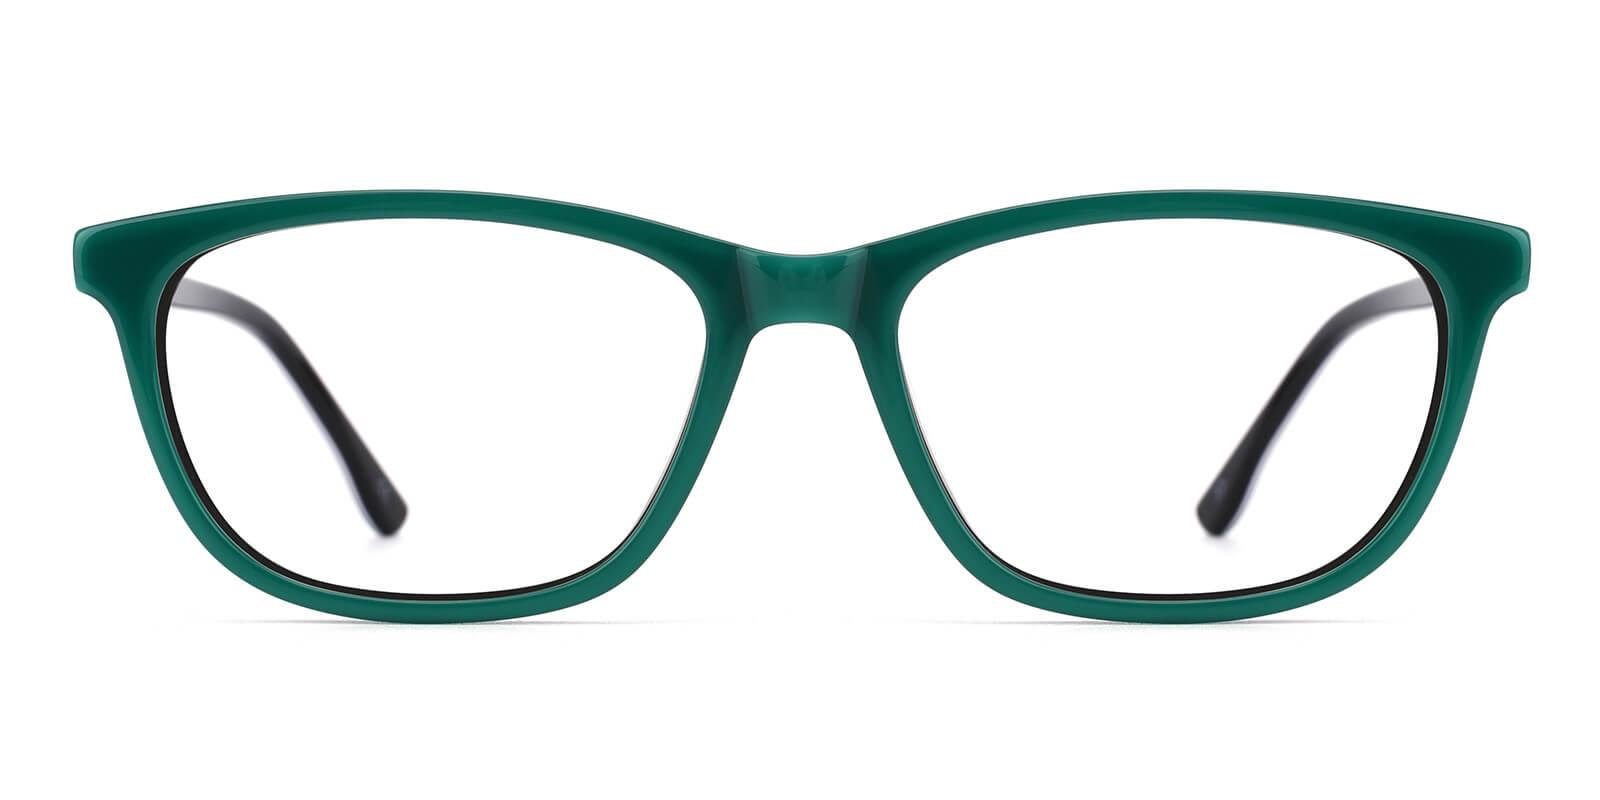 Emblem-Green-Square / Cat-Acetate-Eyeglasses-additional2